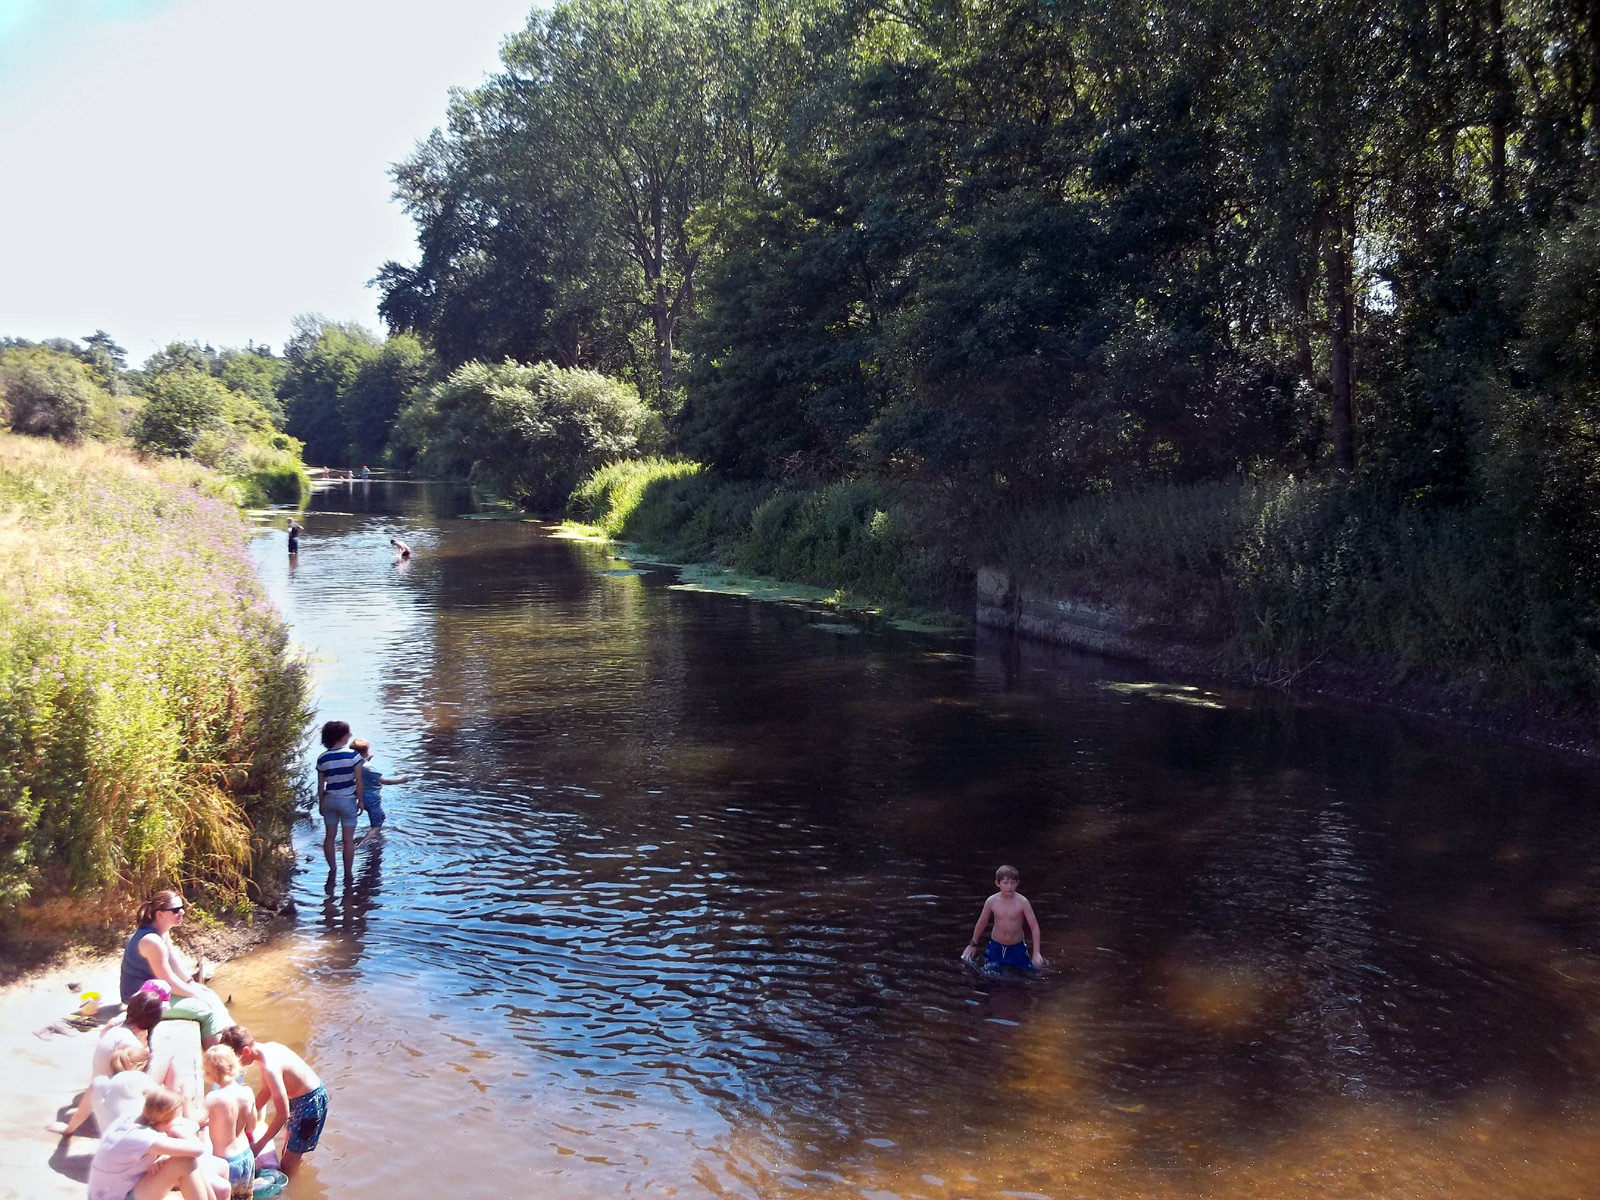 children in the river with a family sitting on the edge